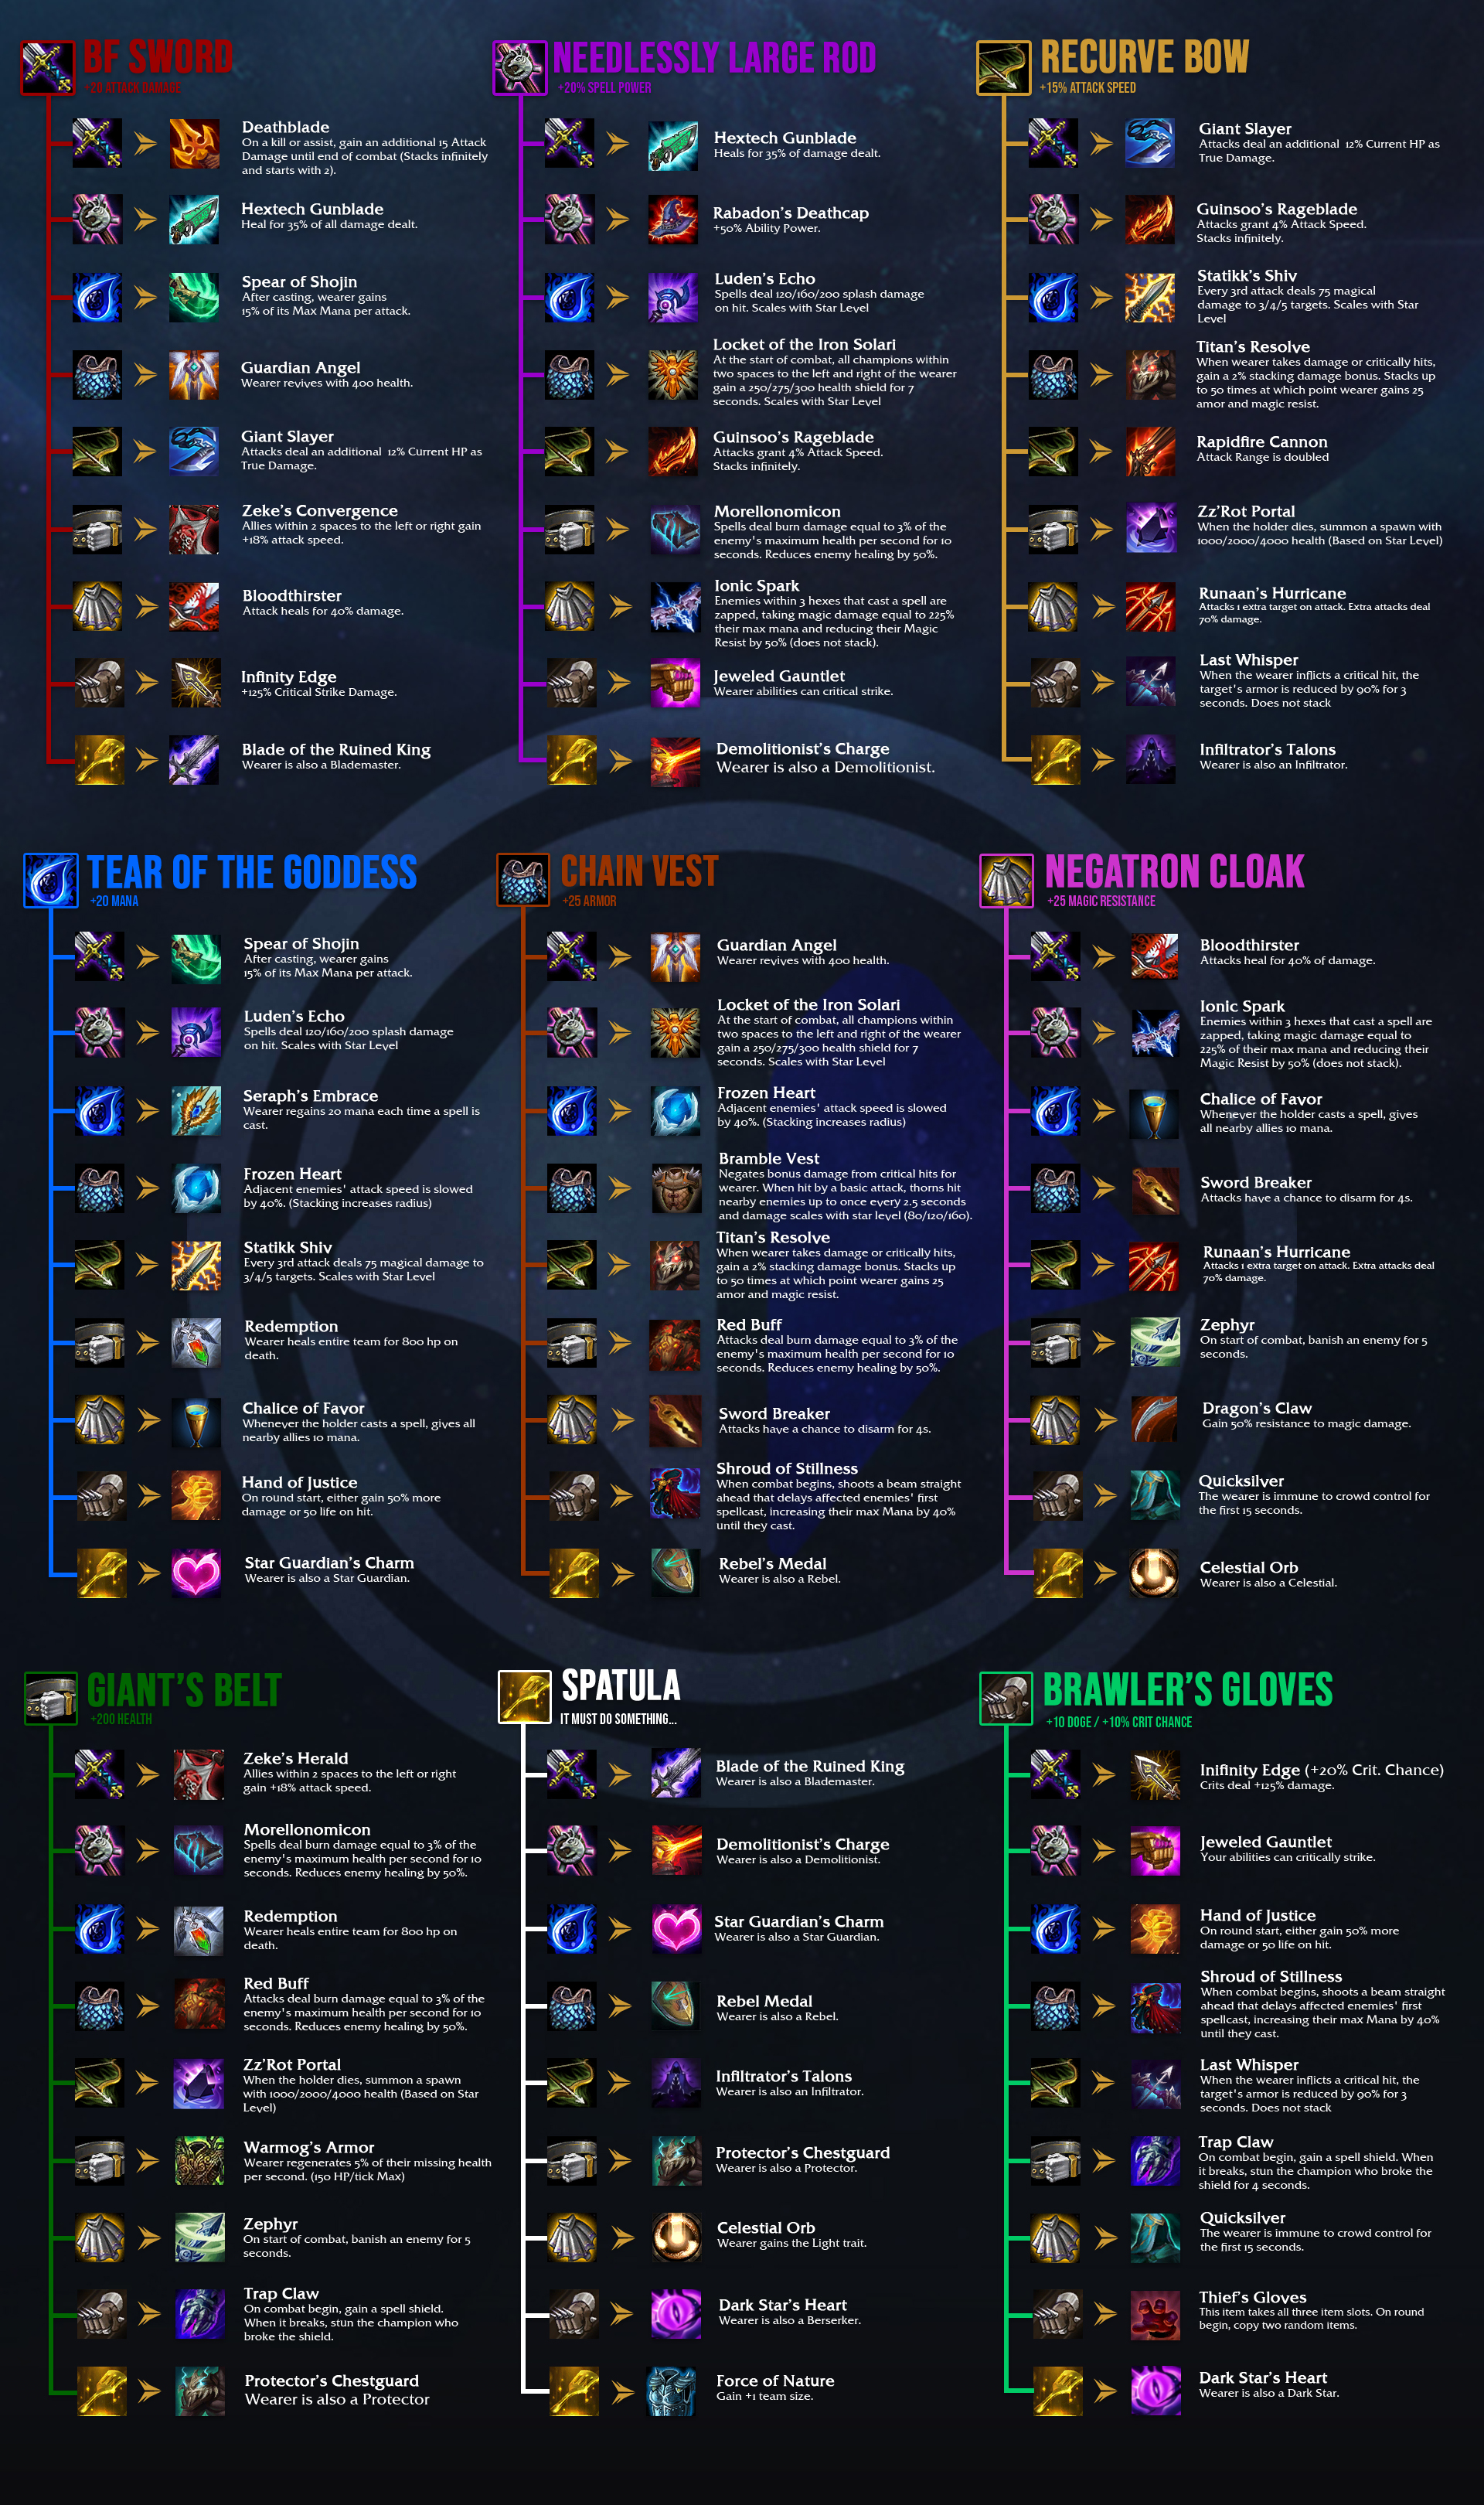 Teamfight Tactics Galaxies combination items, including BF Sword, Needlessly Large Rod, Recurve Bow, Tear of the Goddess, Chain Vest, Negatron Cloak, Giant's Belt, Spatula, and Brawler's Gloves